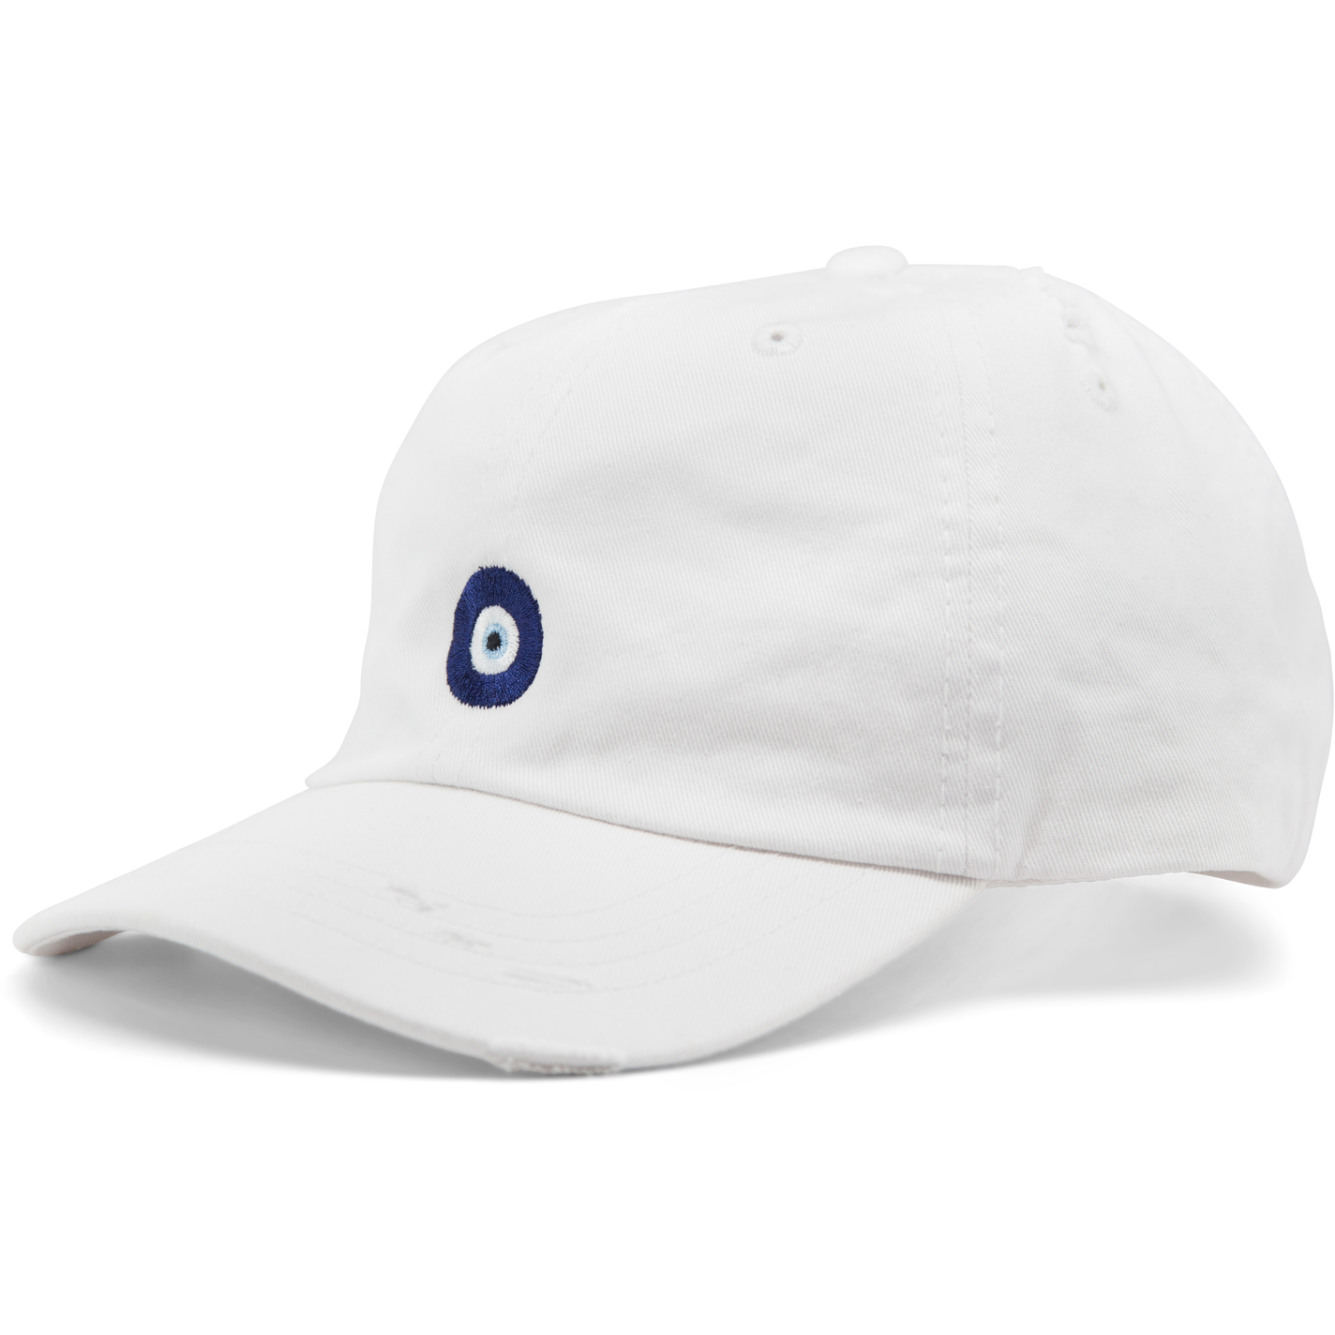 6-panel unconstructed 100% Cotton white dad hat featuring evil eye embroidery on the front and Bled logo embroidered on the back. Third Eye Hat